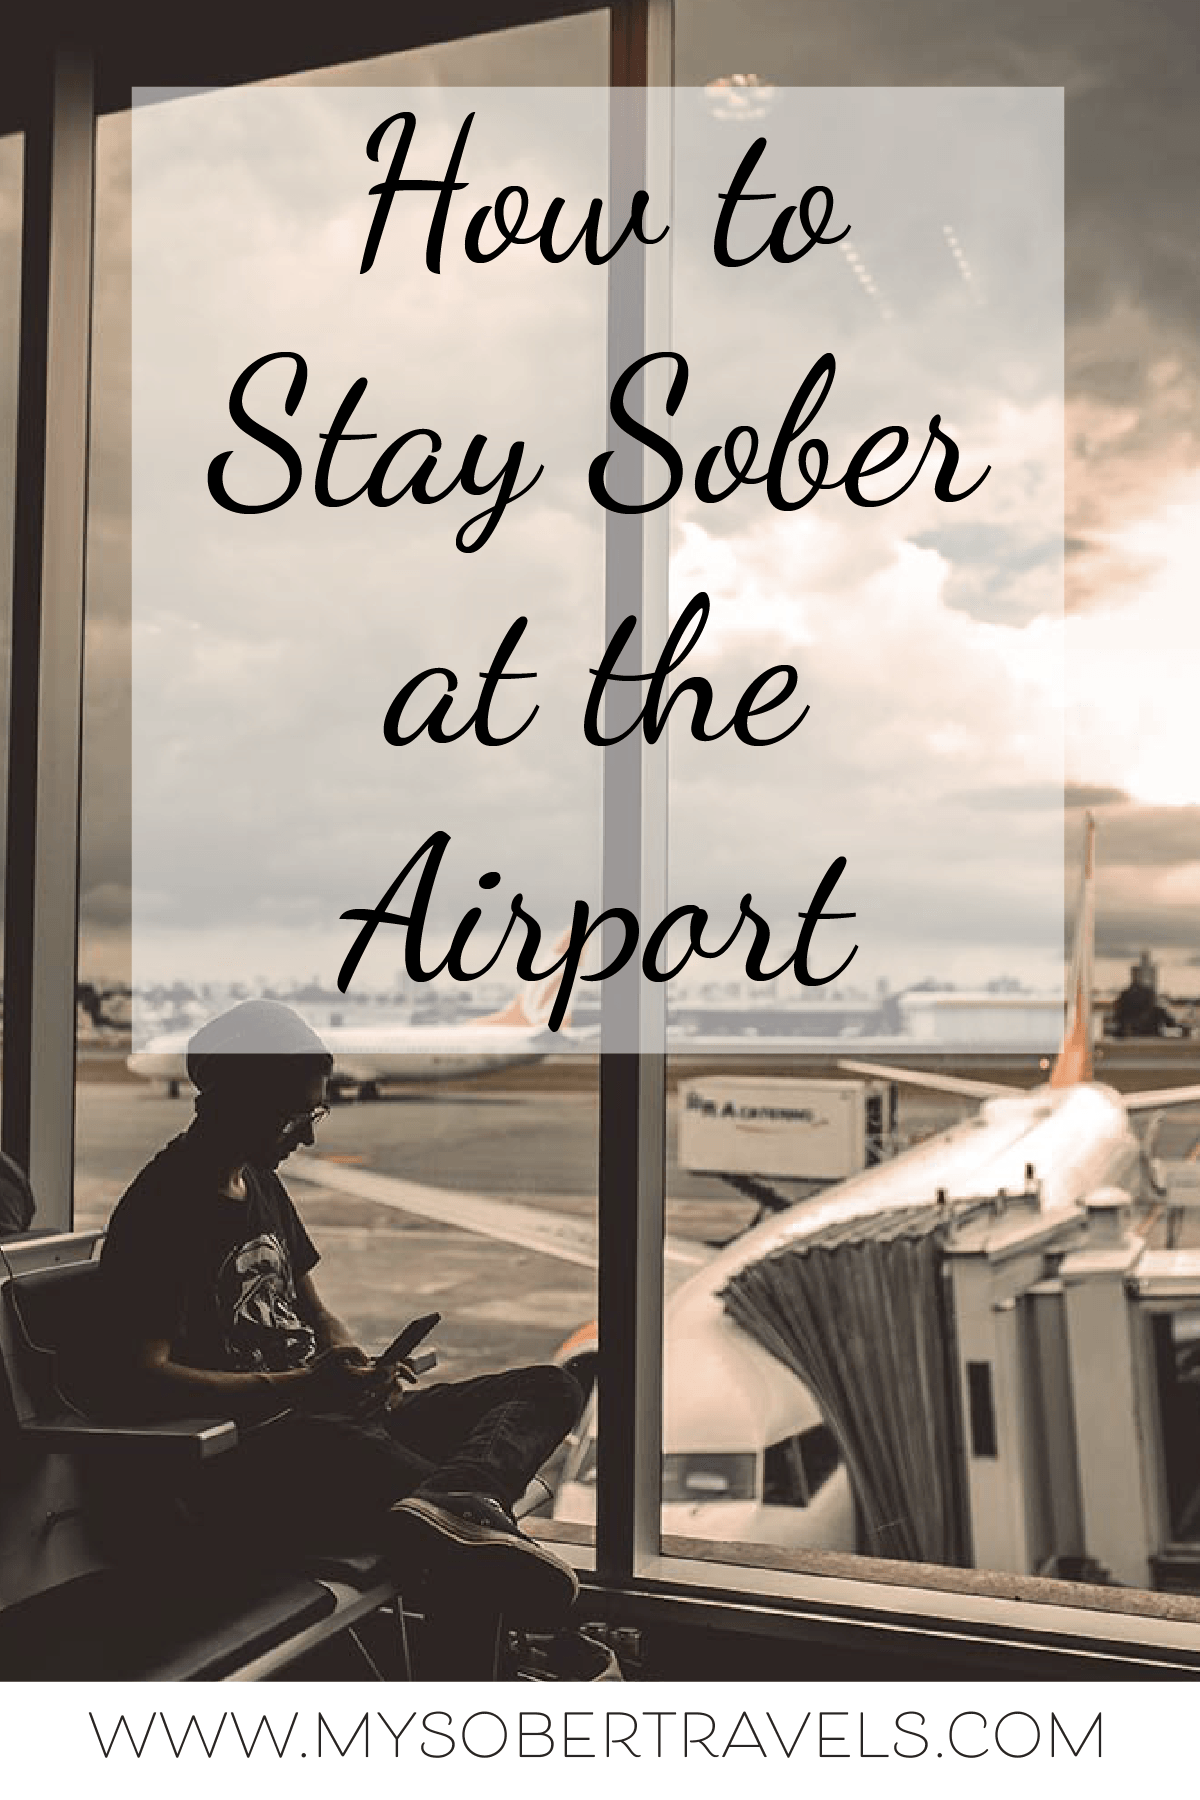 Pin On Sober Travel Tips My Sober Travels